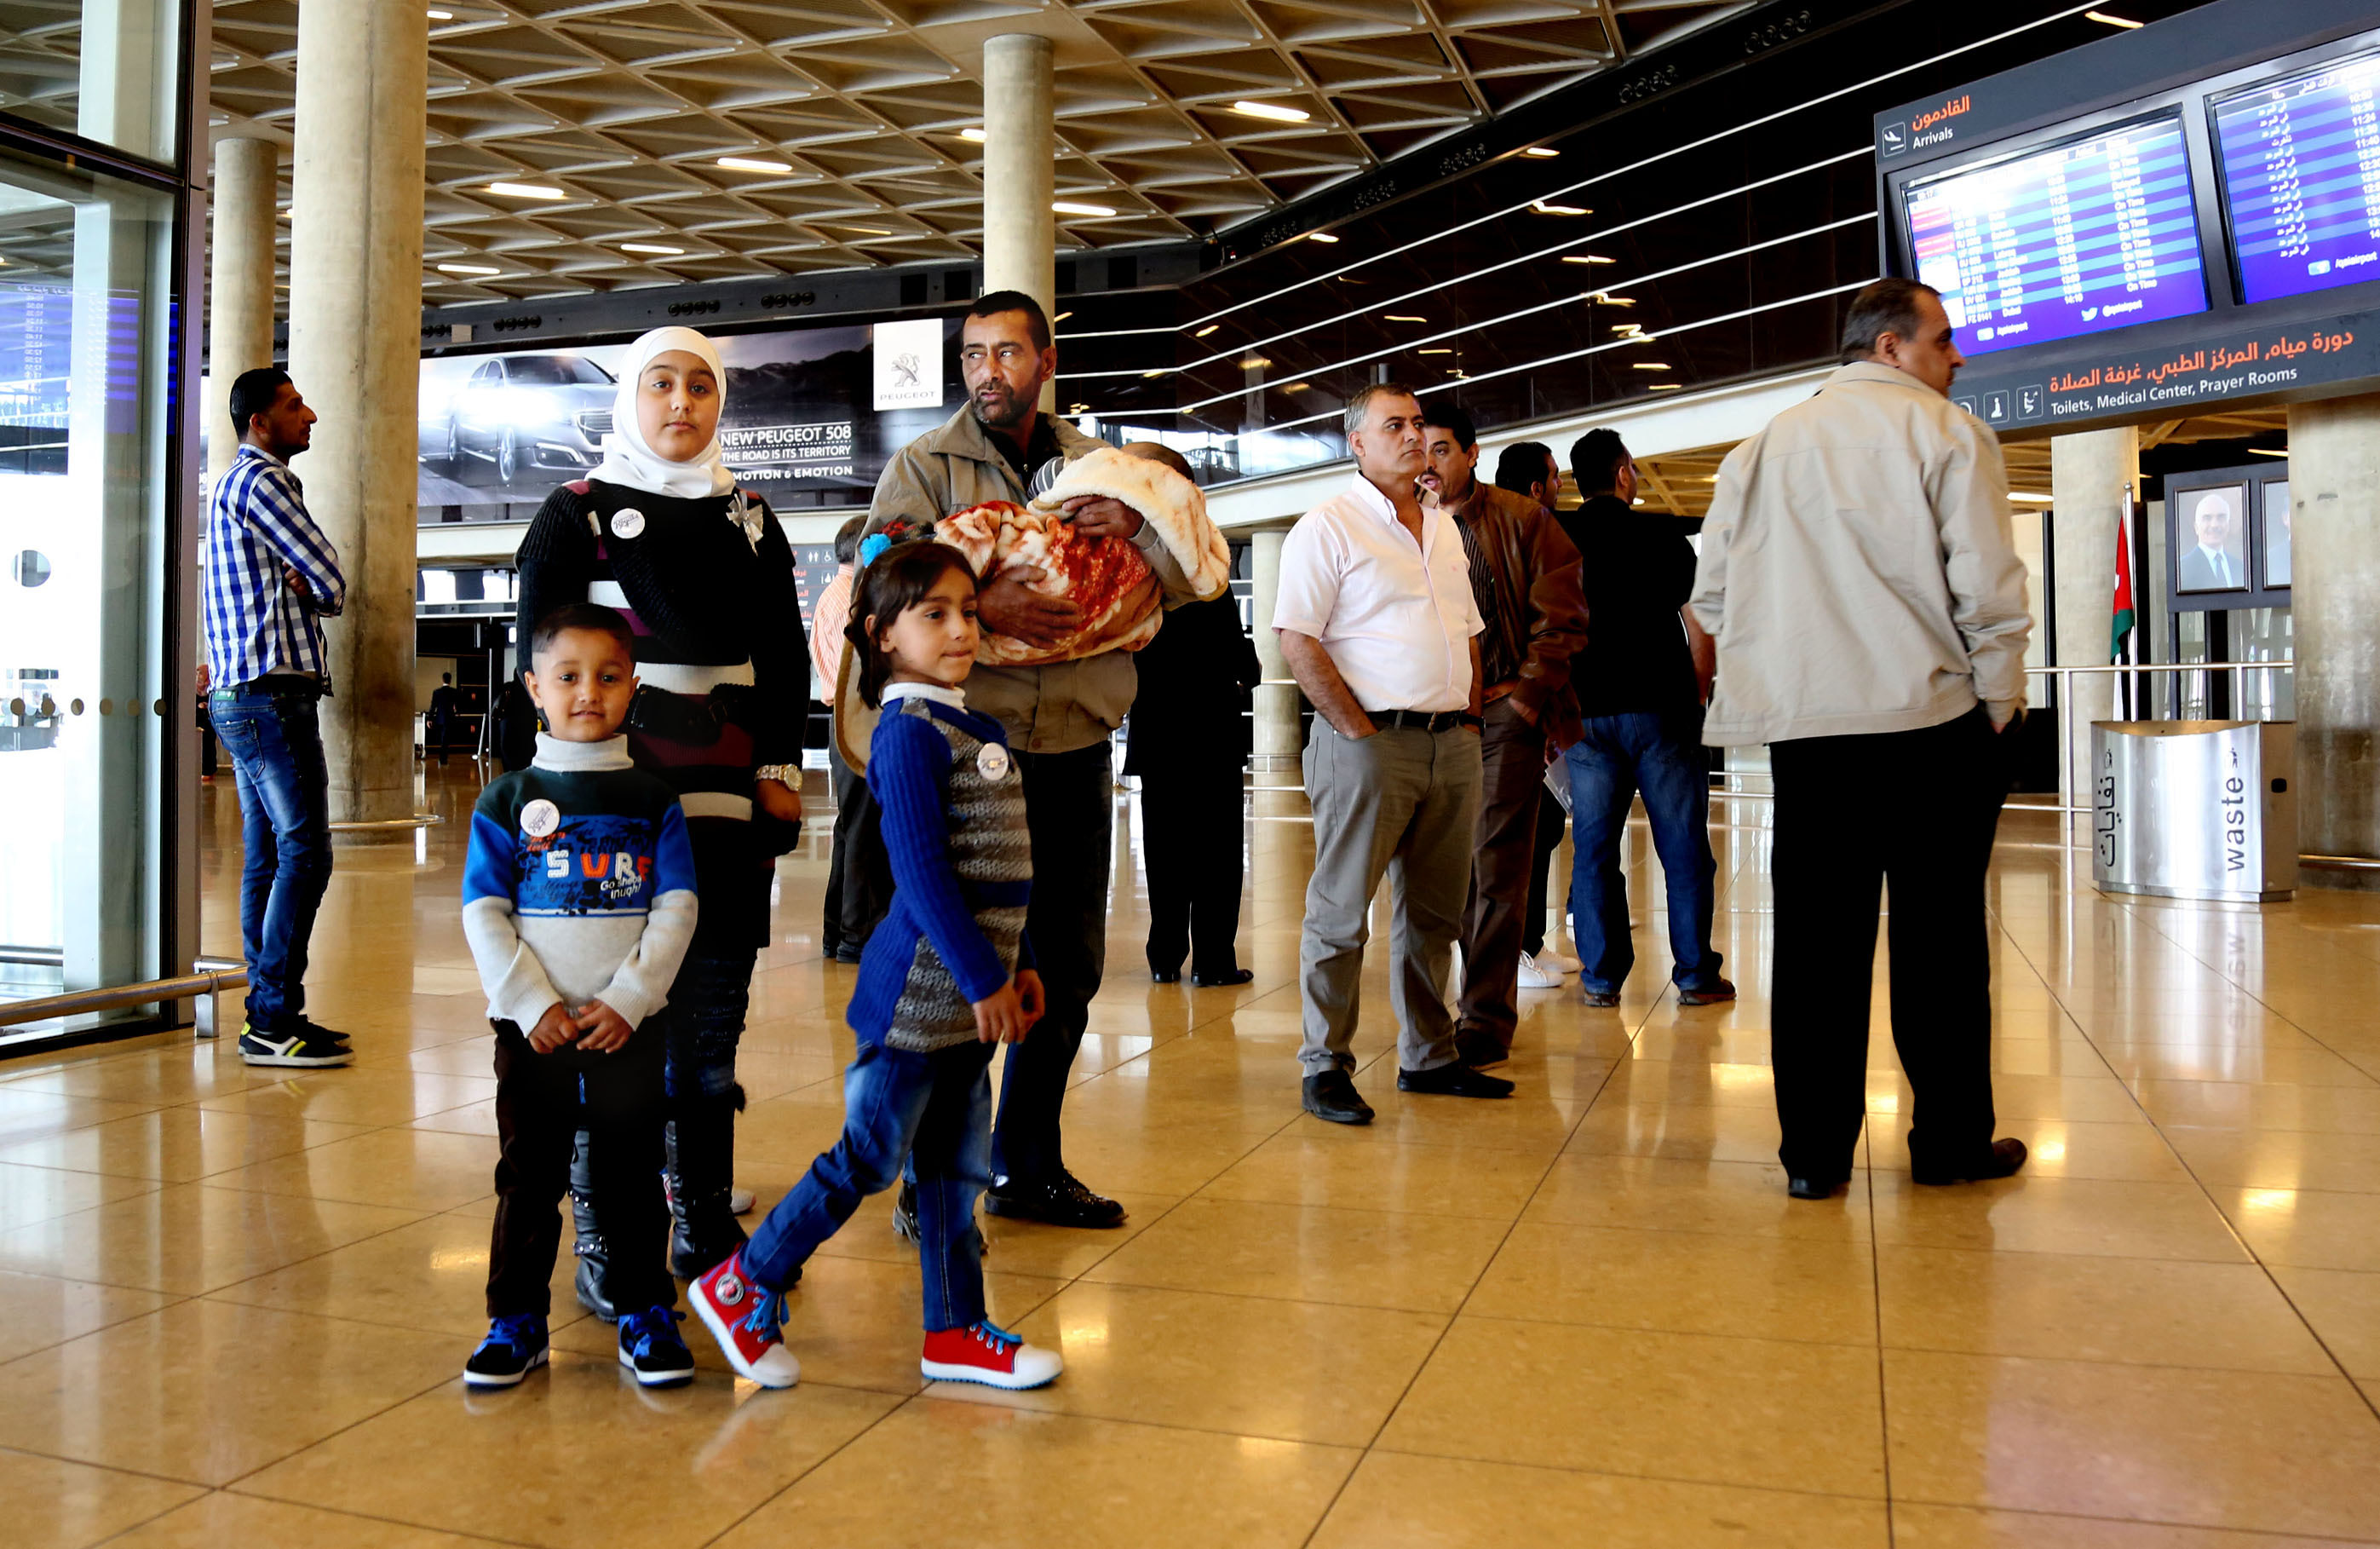 "Syrian refugee Ahmad al-Abboud, center, waits with his family at the International Airport of Amman, Jordan, Wednesday, April 6, 2016. The first Syrian family to be resettled to the U.S. under its speeded-up ""surge operation"" departed to the United States Wednesday from the Jordanian capital, Amman. Al-Abboud, who is being resettled with his wife and five children, said that although he is thankful to Jordan  where he has lived for three years after fleeing Syria"